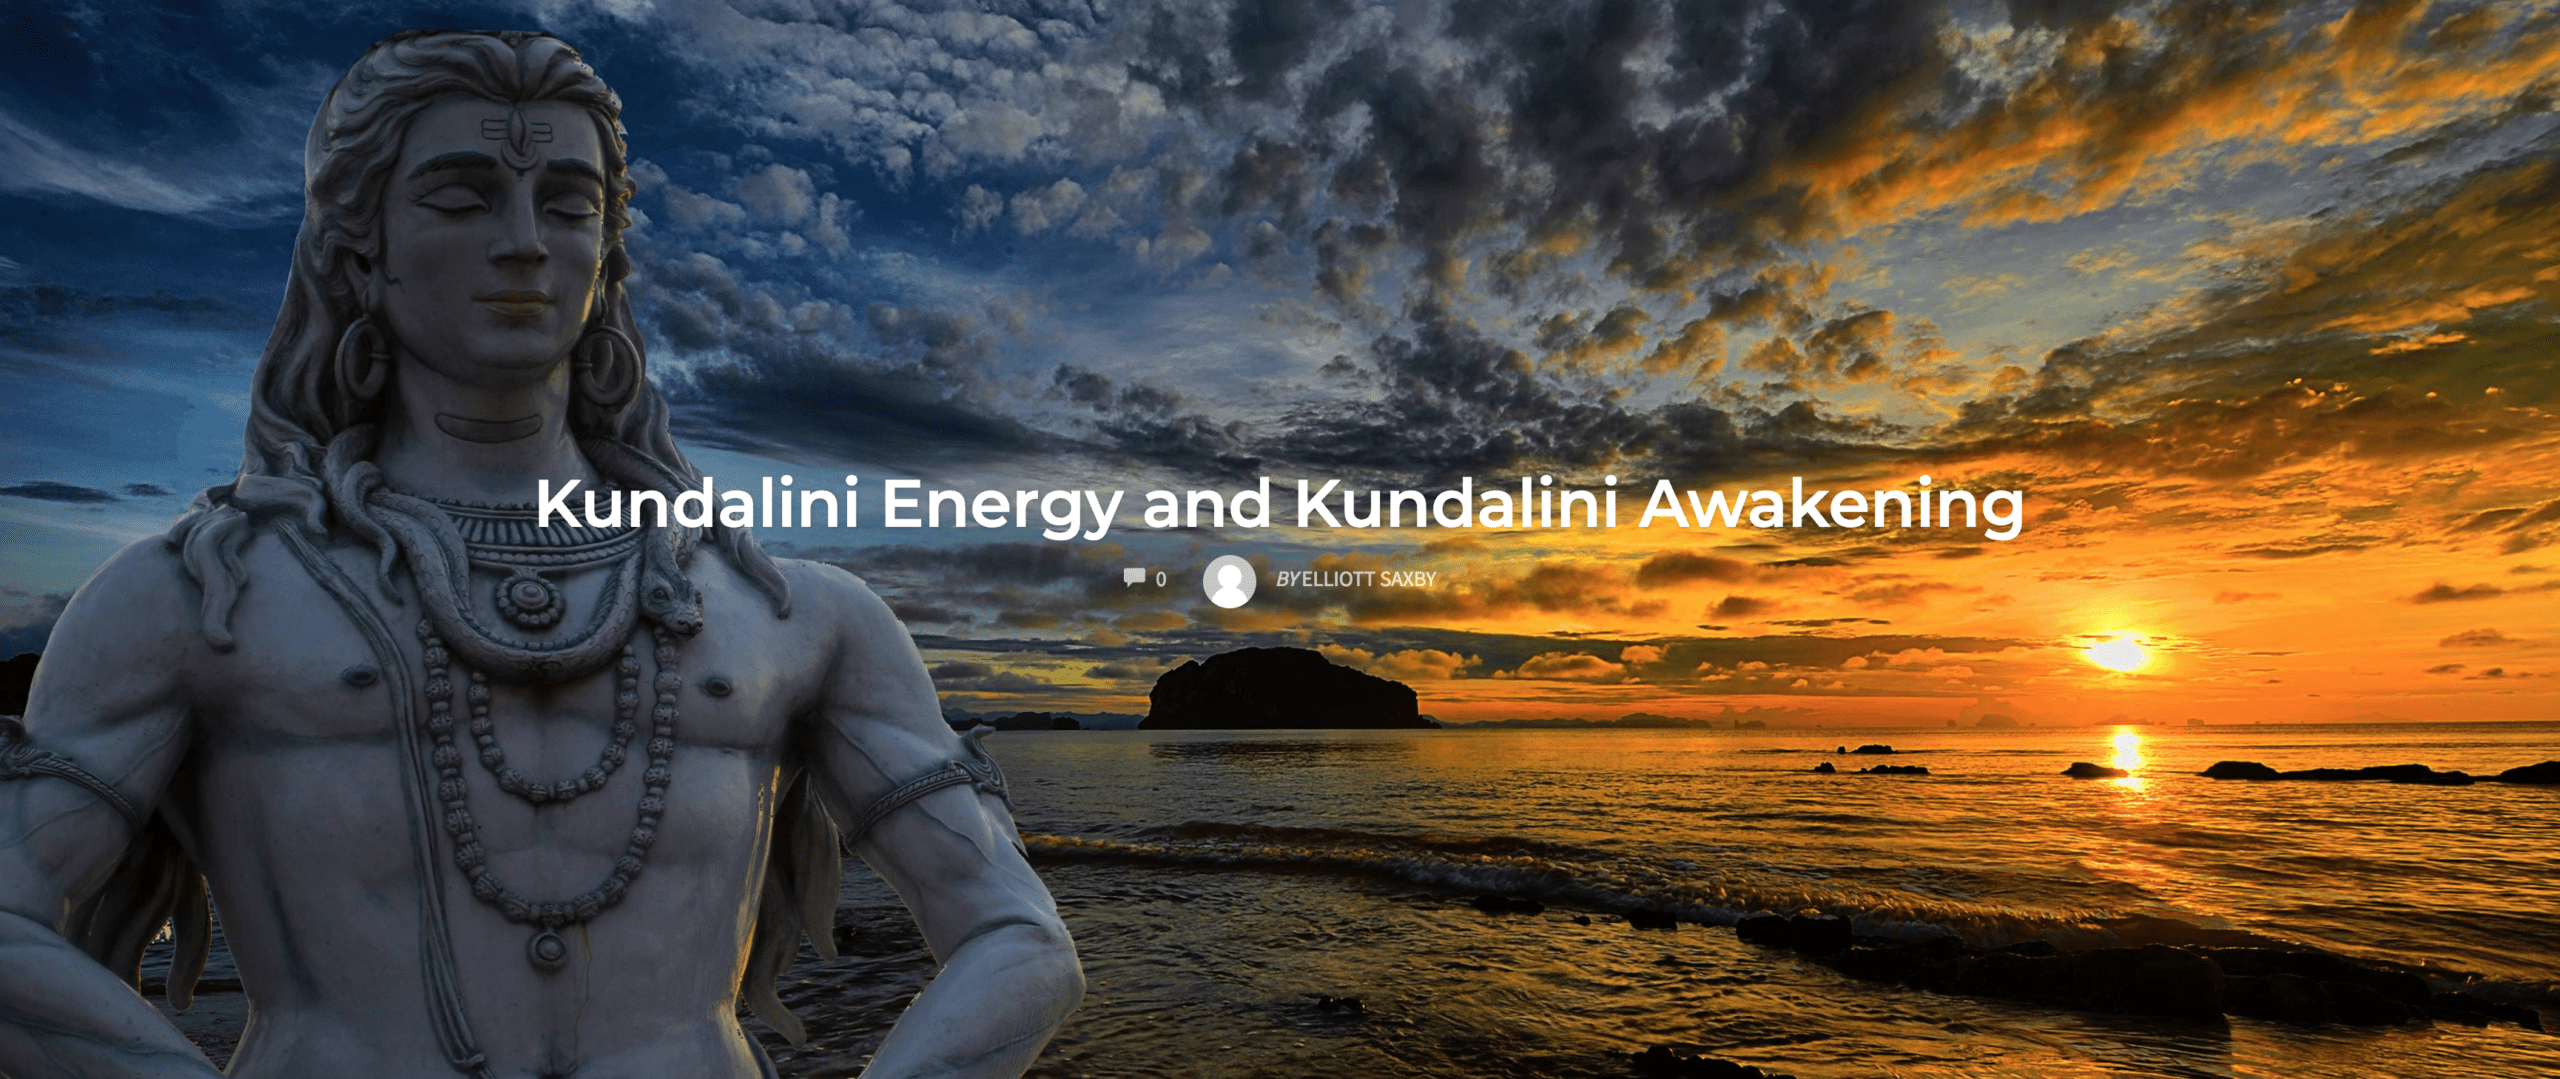 Kundalini Energy and Kundalini Awakening - Body De-armouring